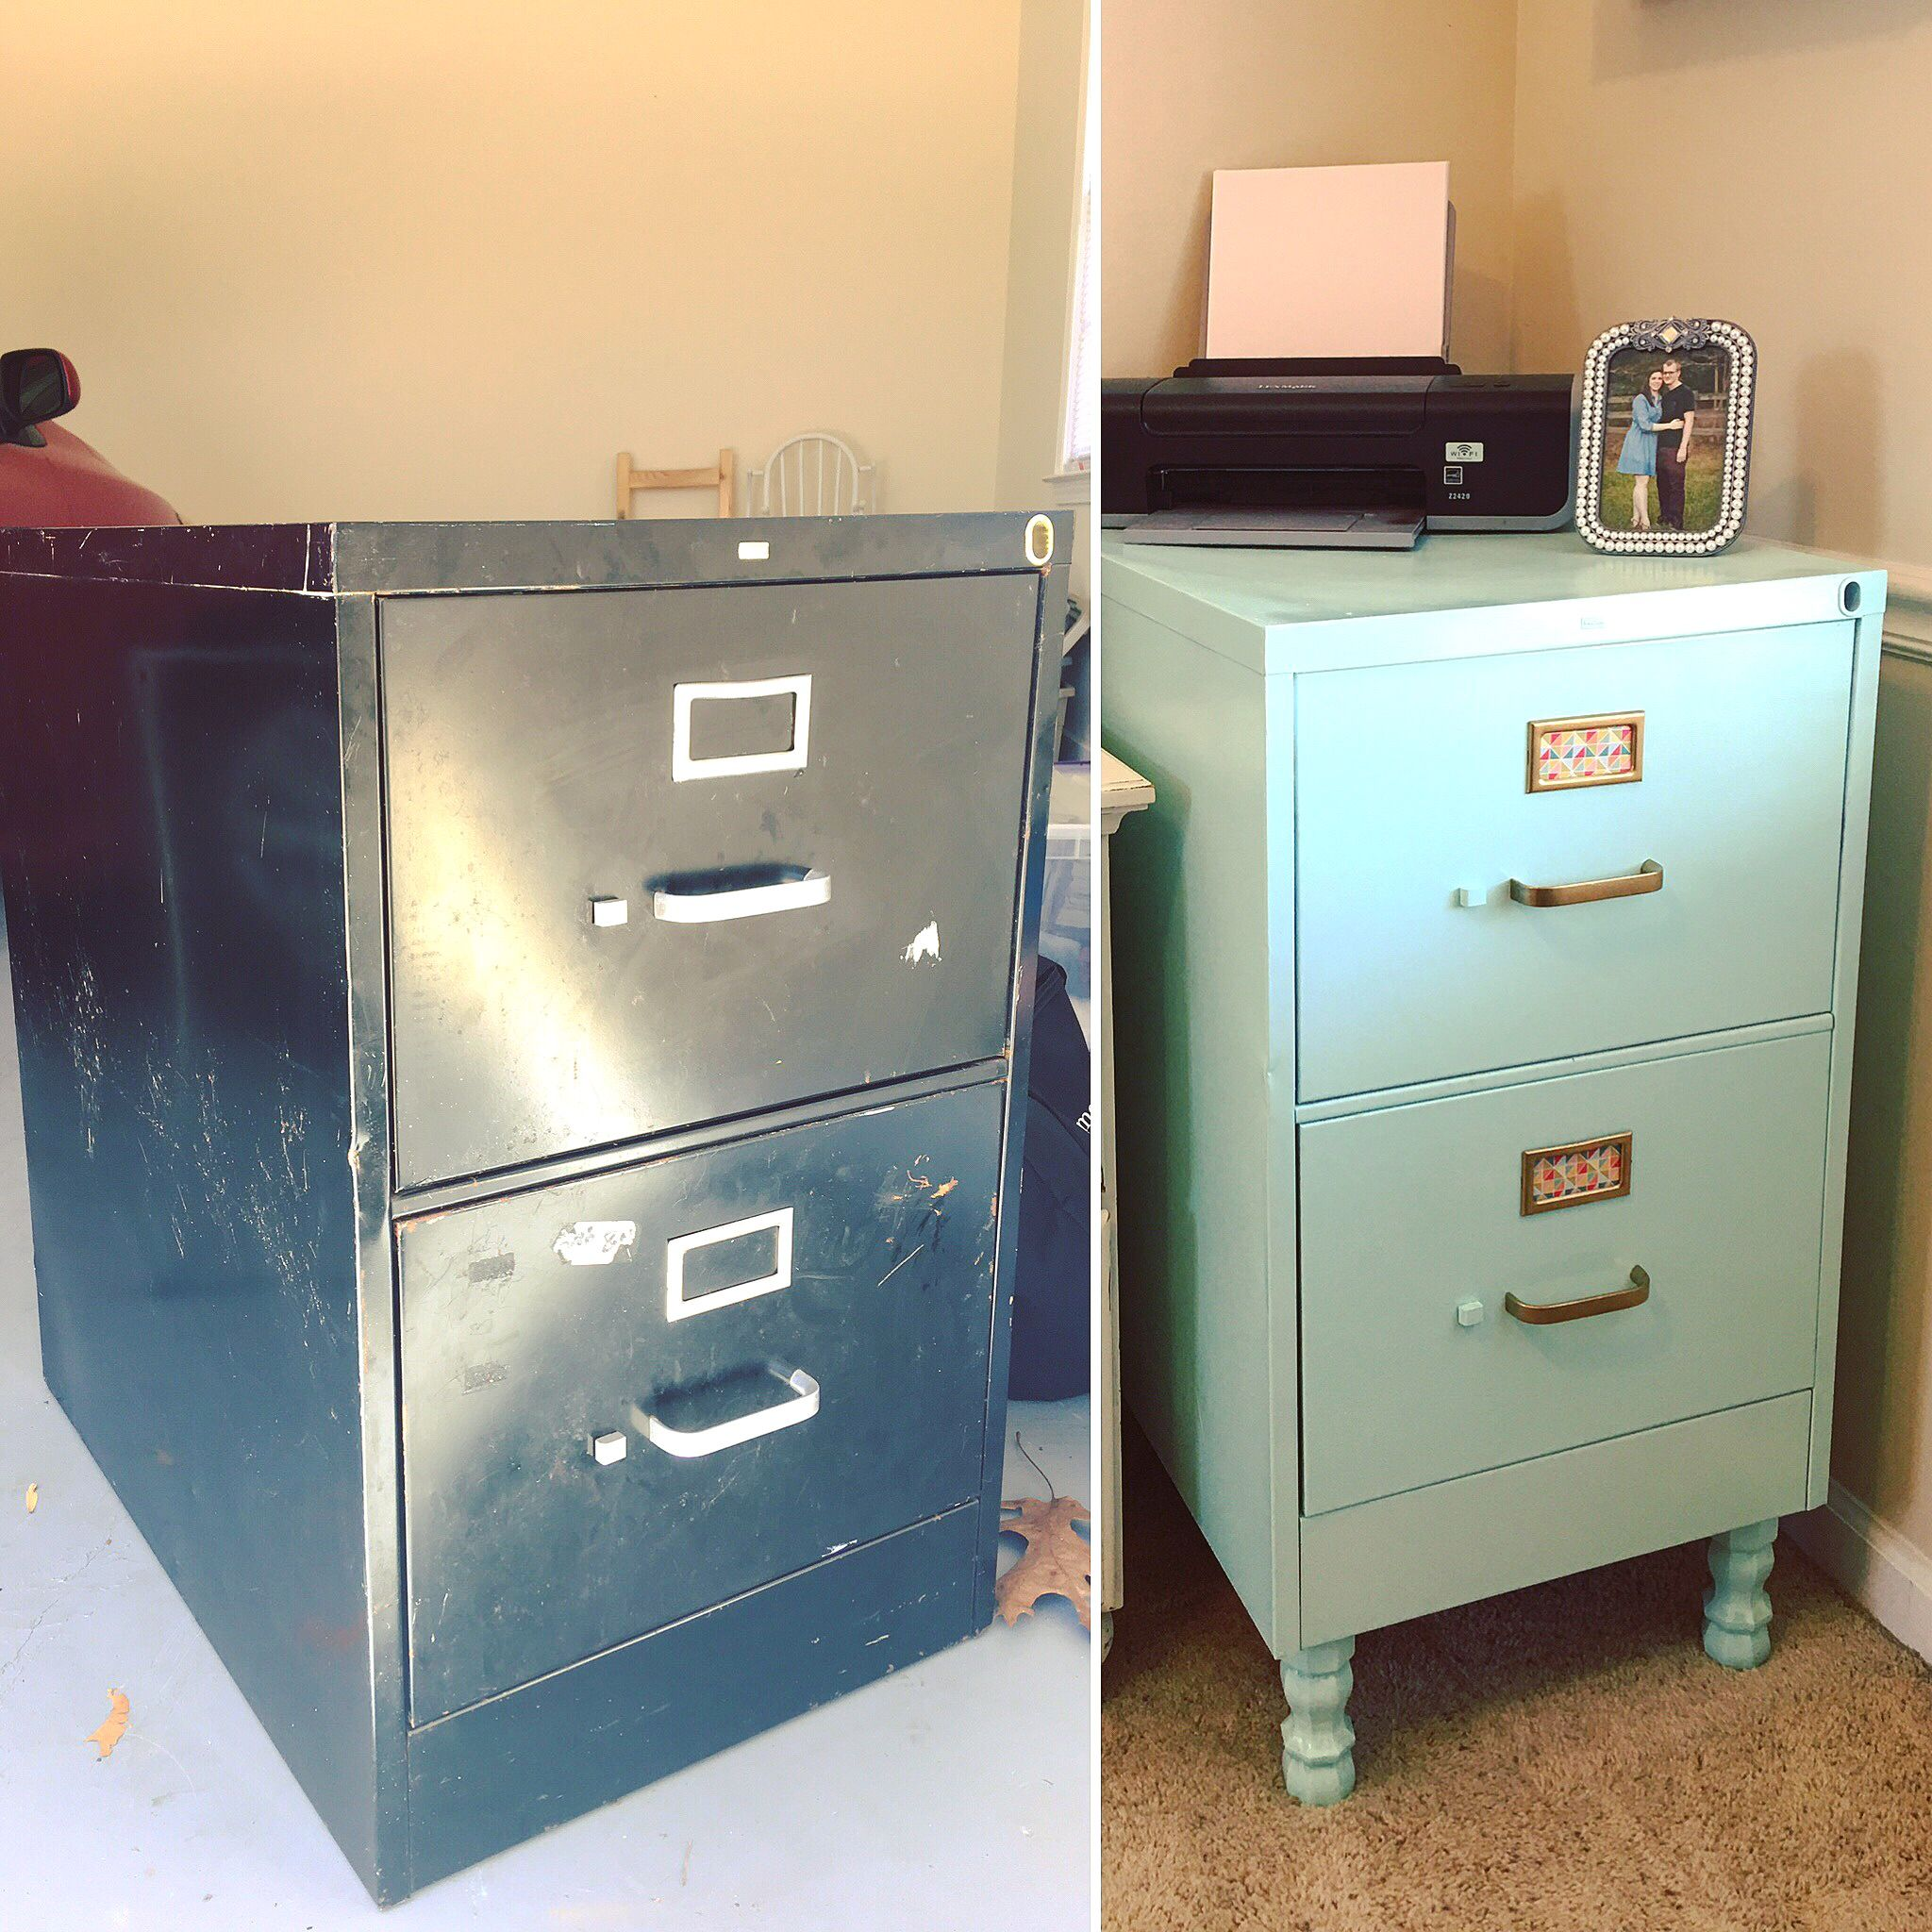 Took an ugly rusty 8 filing cabinet and made it cute